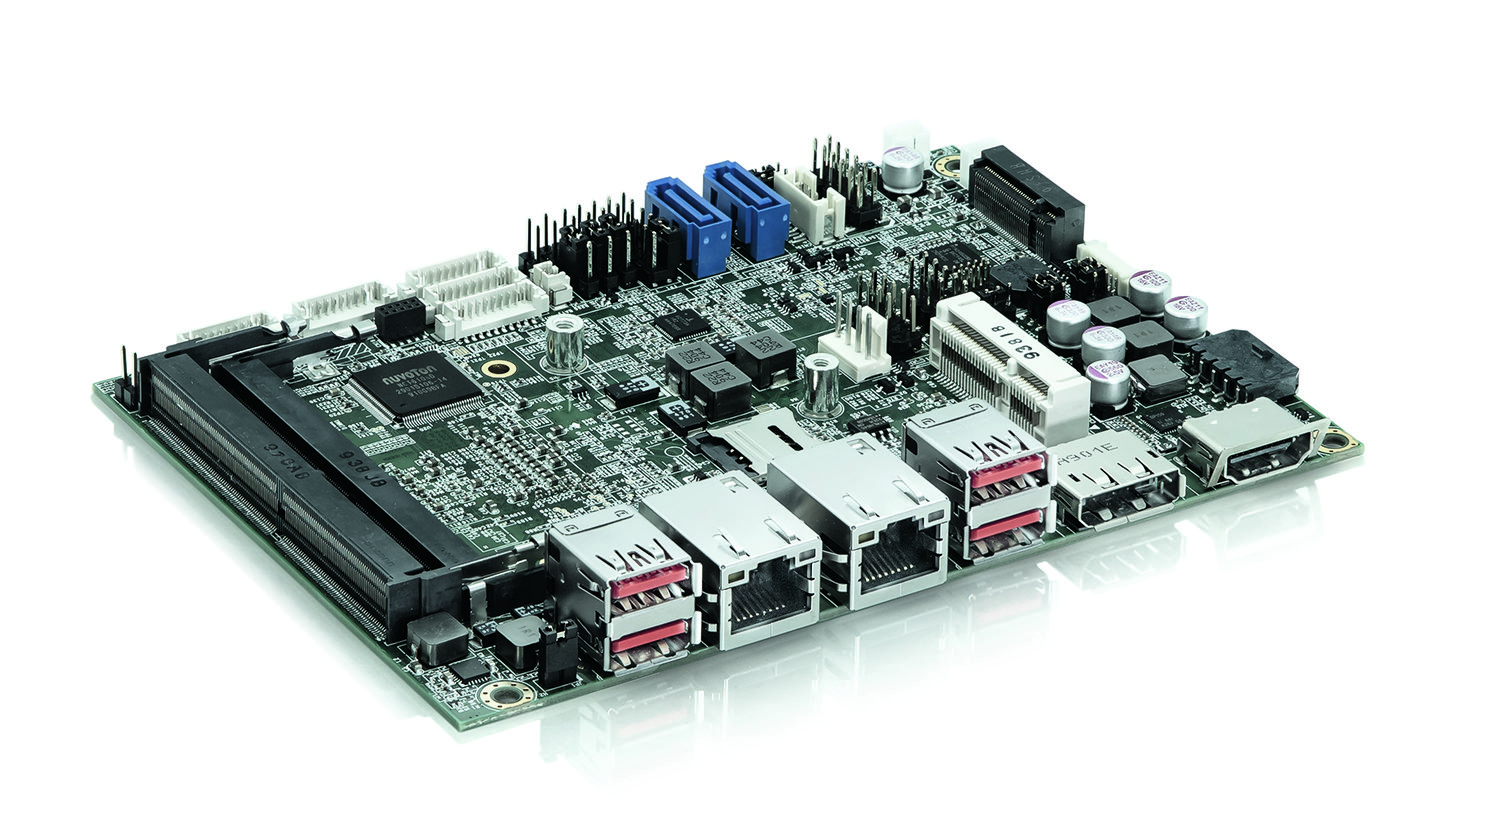 Kontron Single Board Computer in 3.5-inch format for AMD Ryzen™ Embedded V1000/R1000 processor